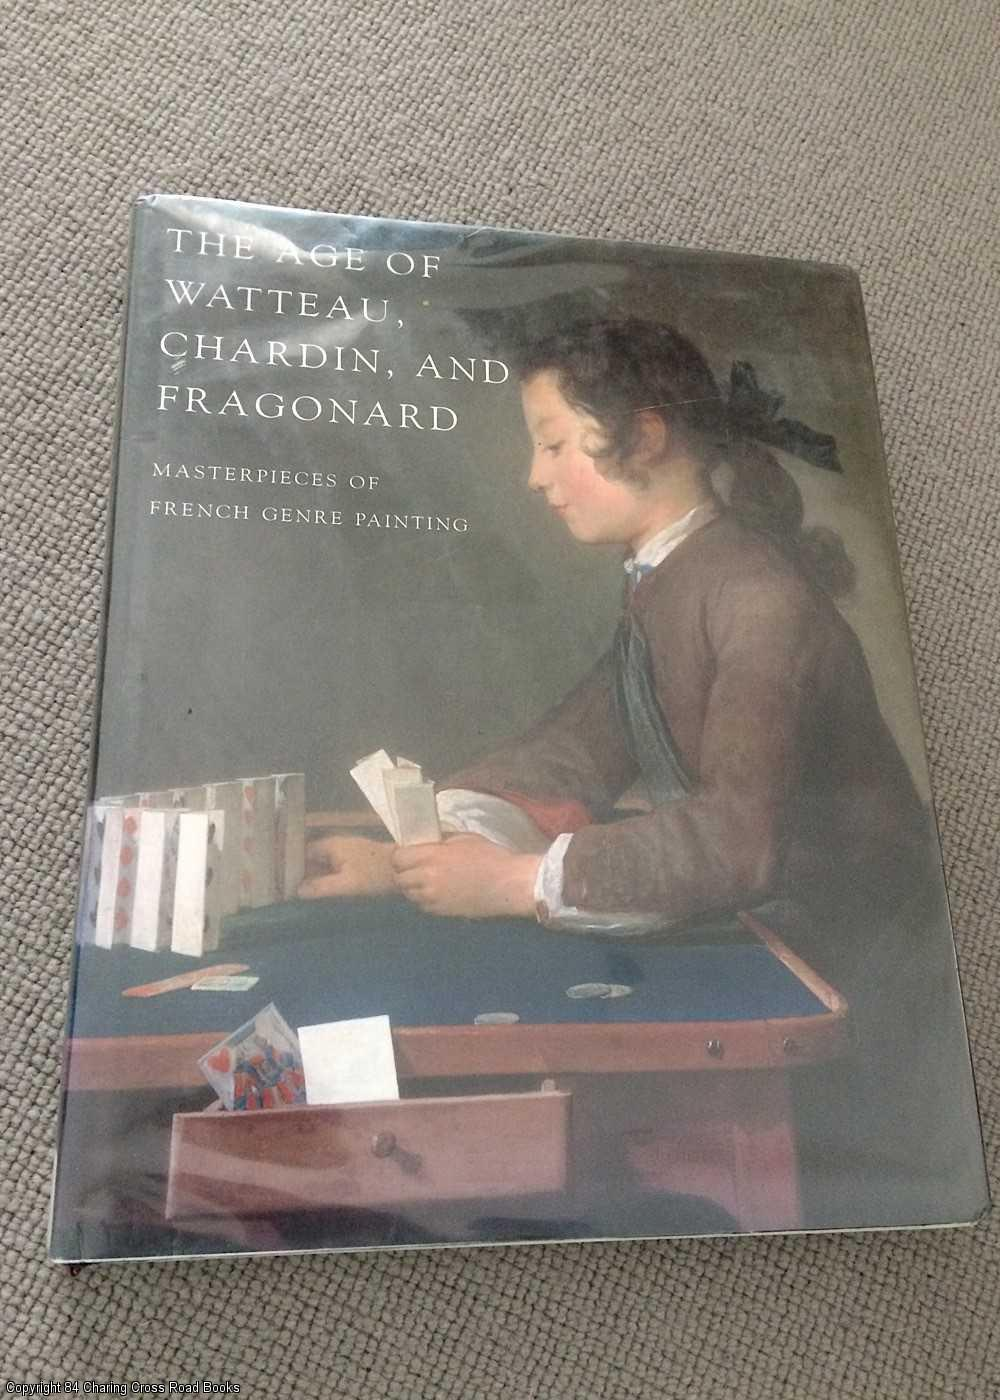 BAILEY, COLIN B - The Age of Watteau, Chardin and Fragonard: Masterpieces of French Genre Painting